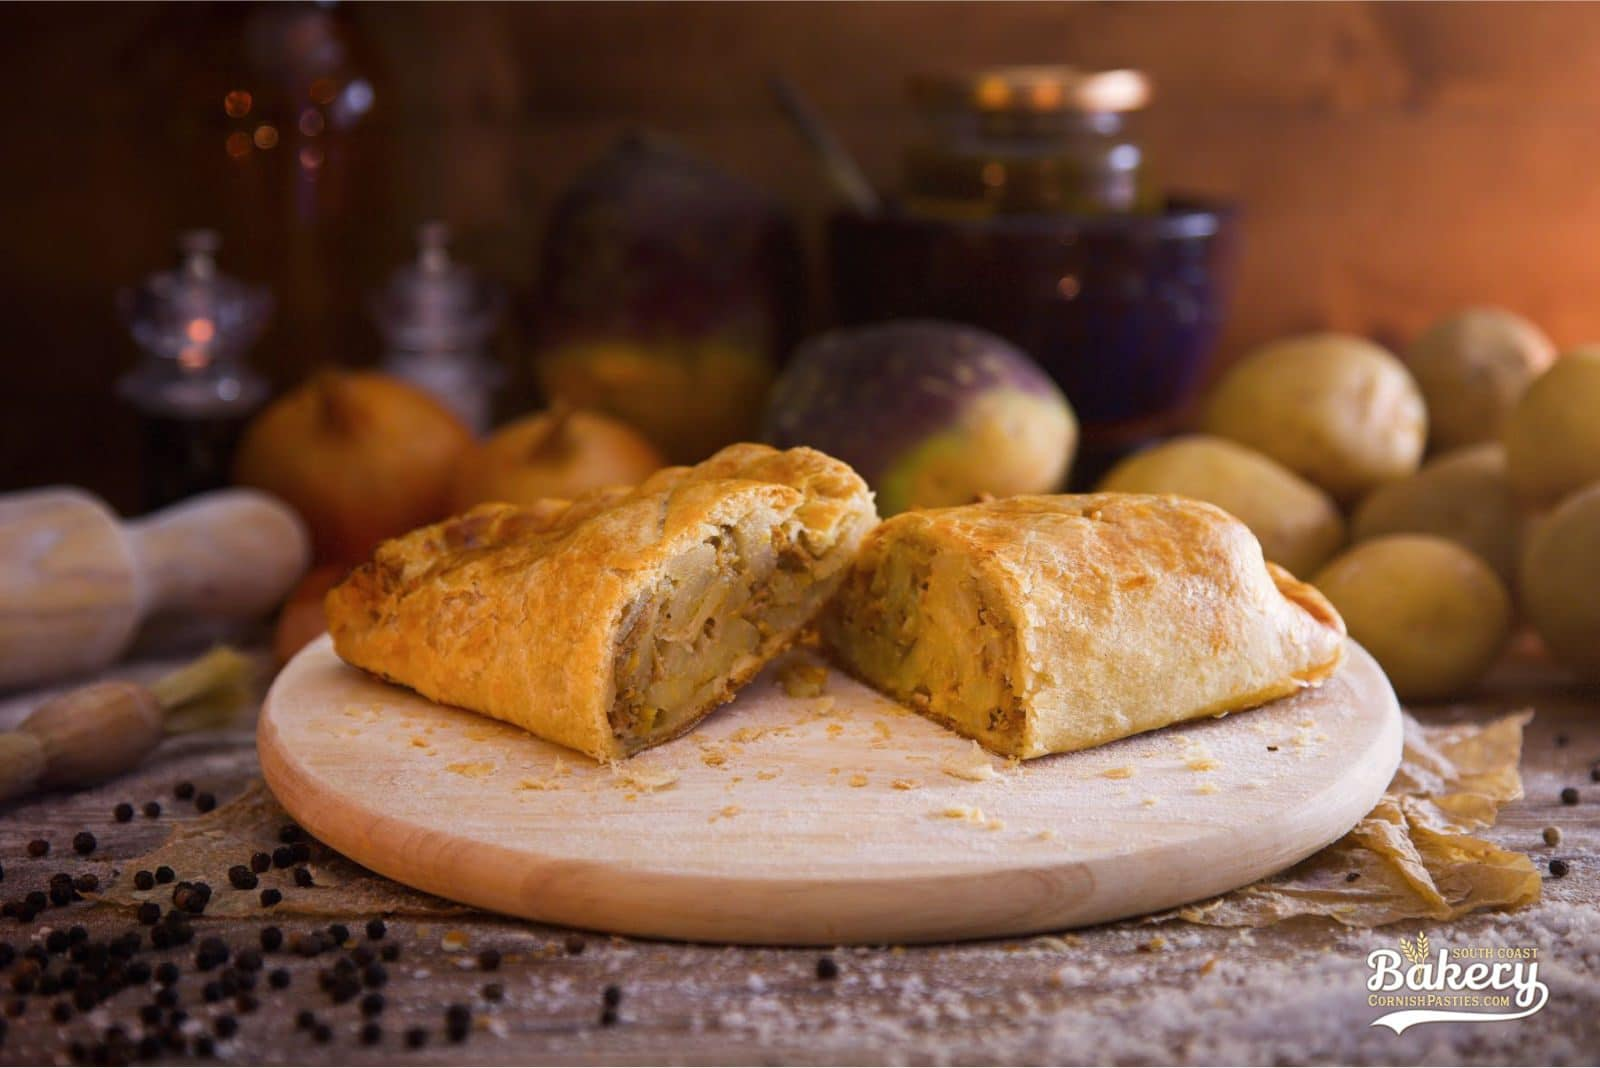 Lamb & Mint Pasty - CornishPasties.com